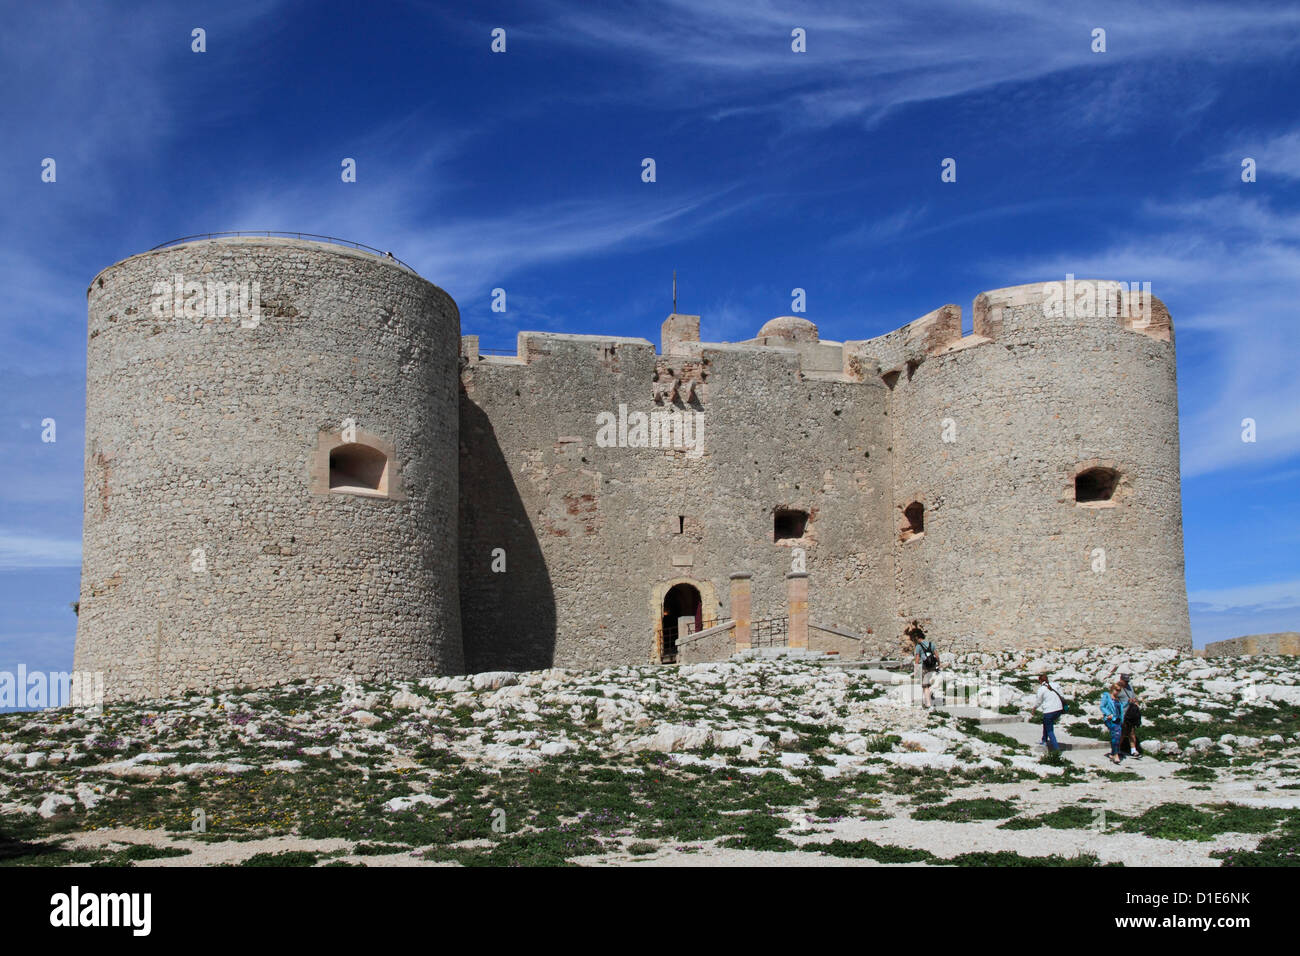 Chateau d'If, Marseilles, Bouches du Rhone, Provence, France, Europe - Stock Image